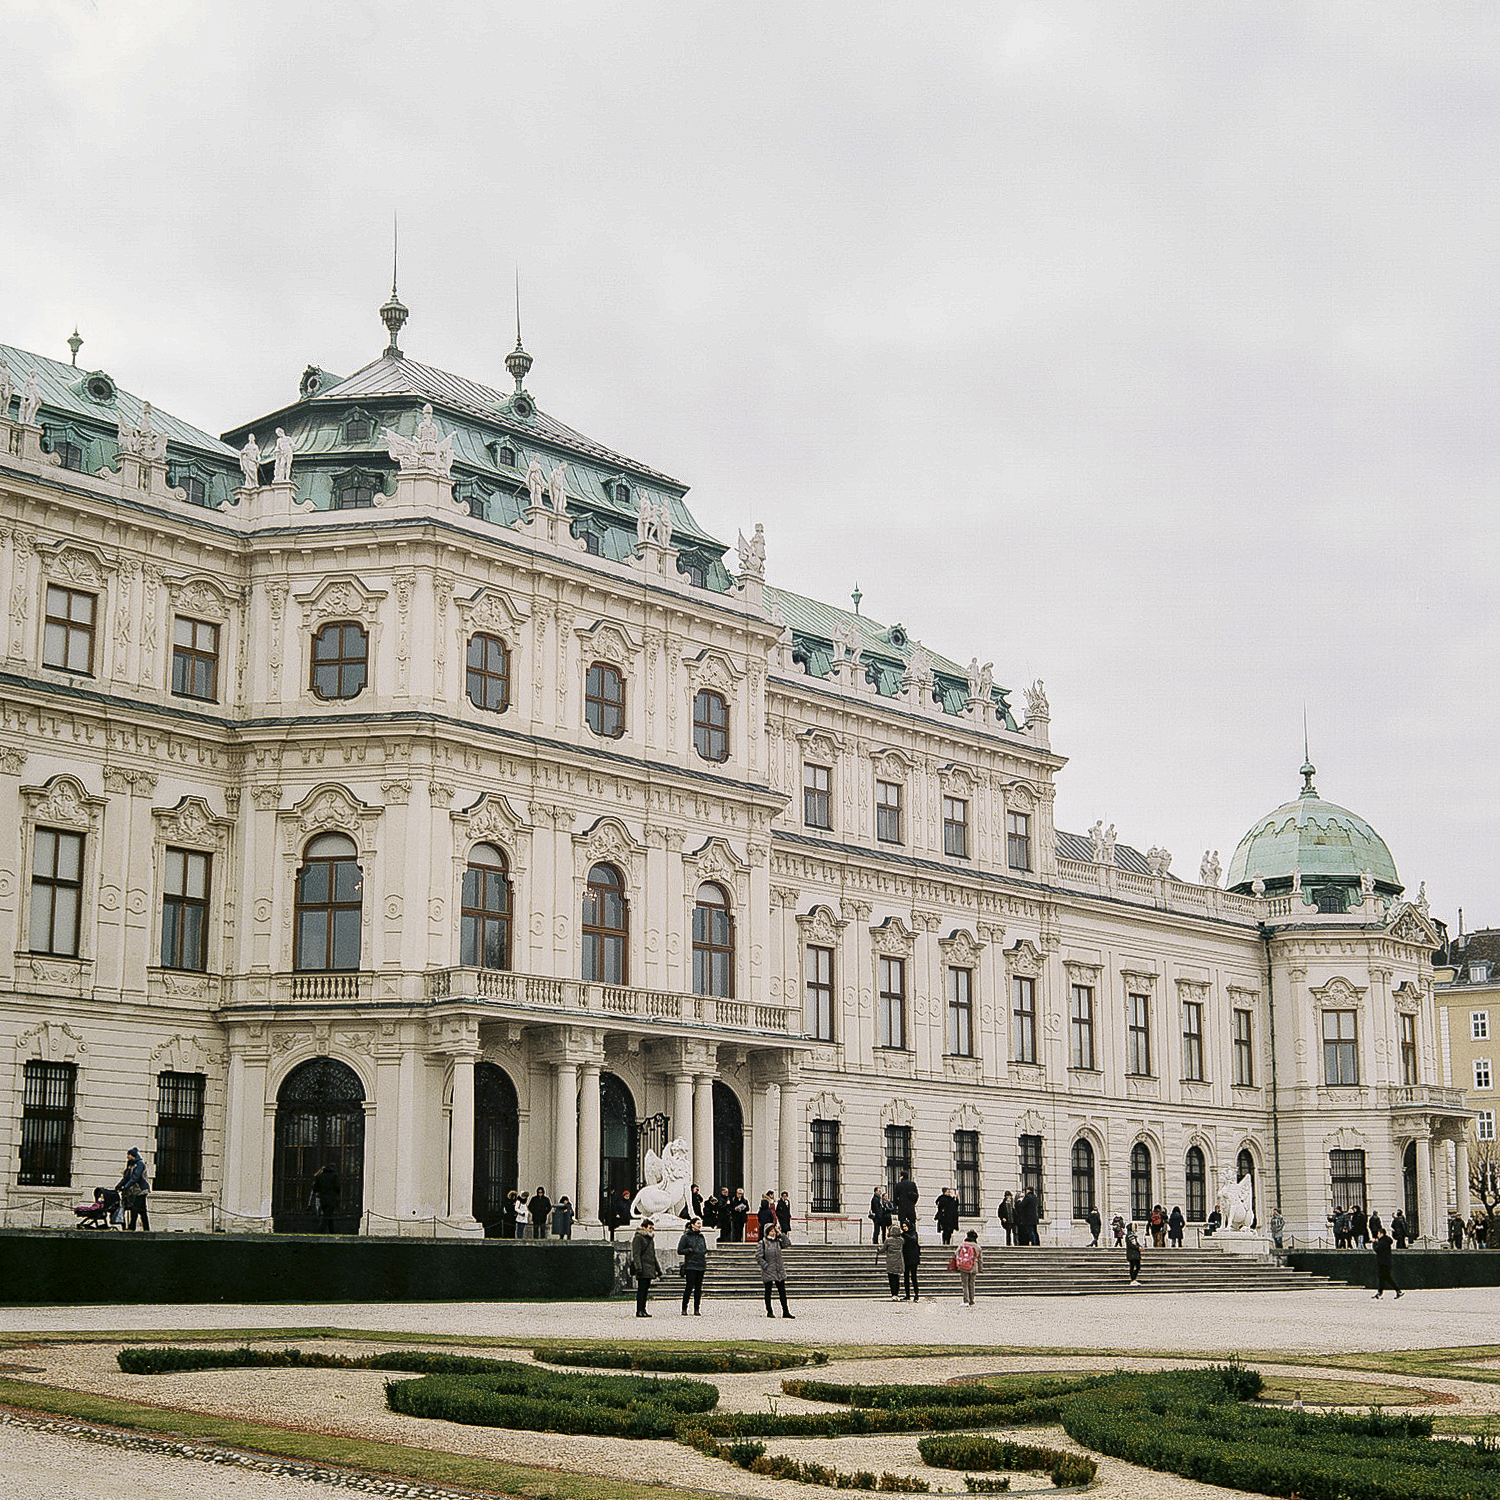 The Belvedere in Vienna, Austria.